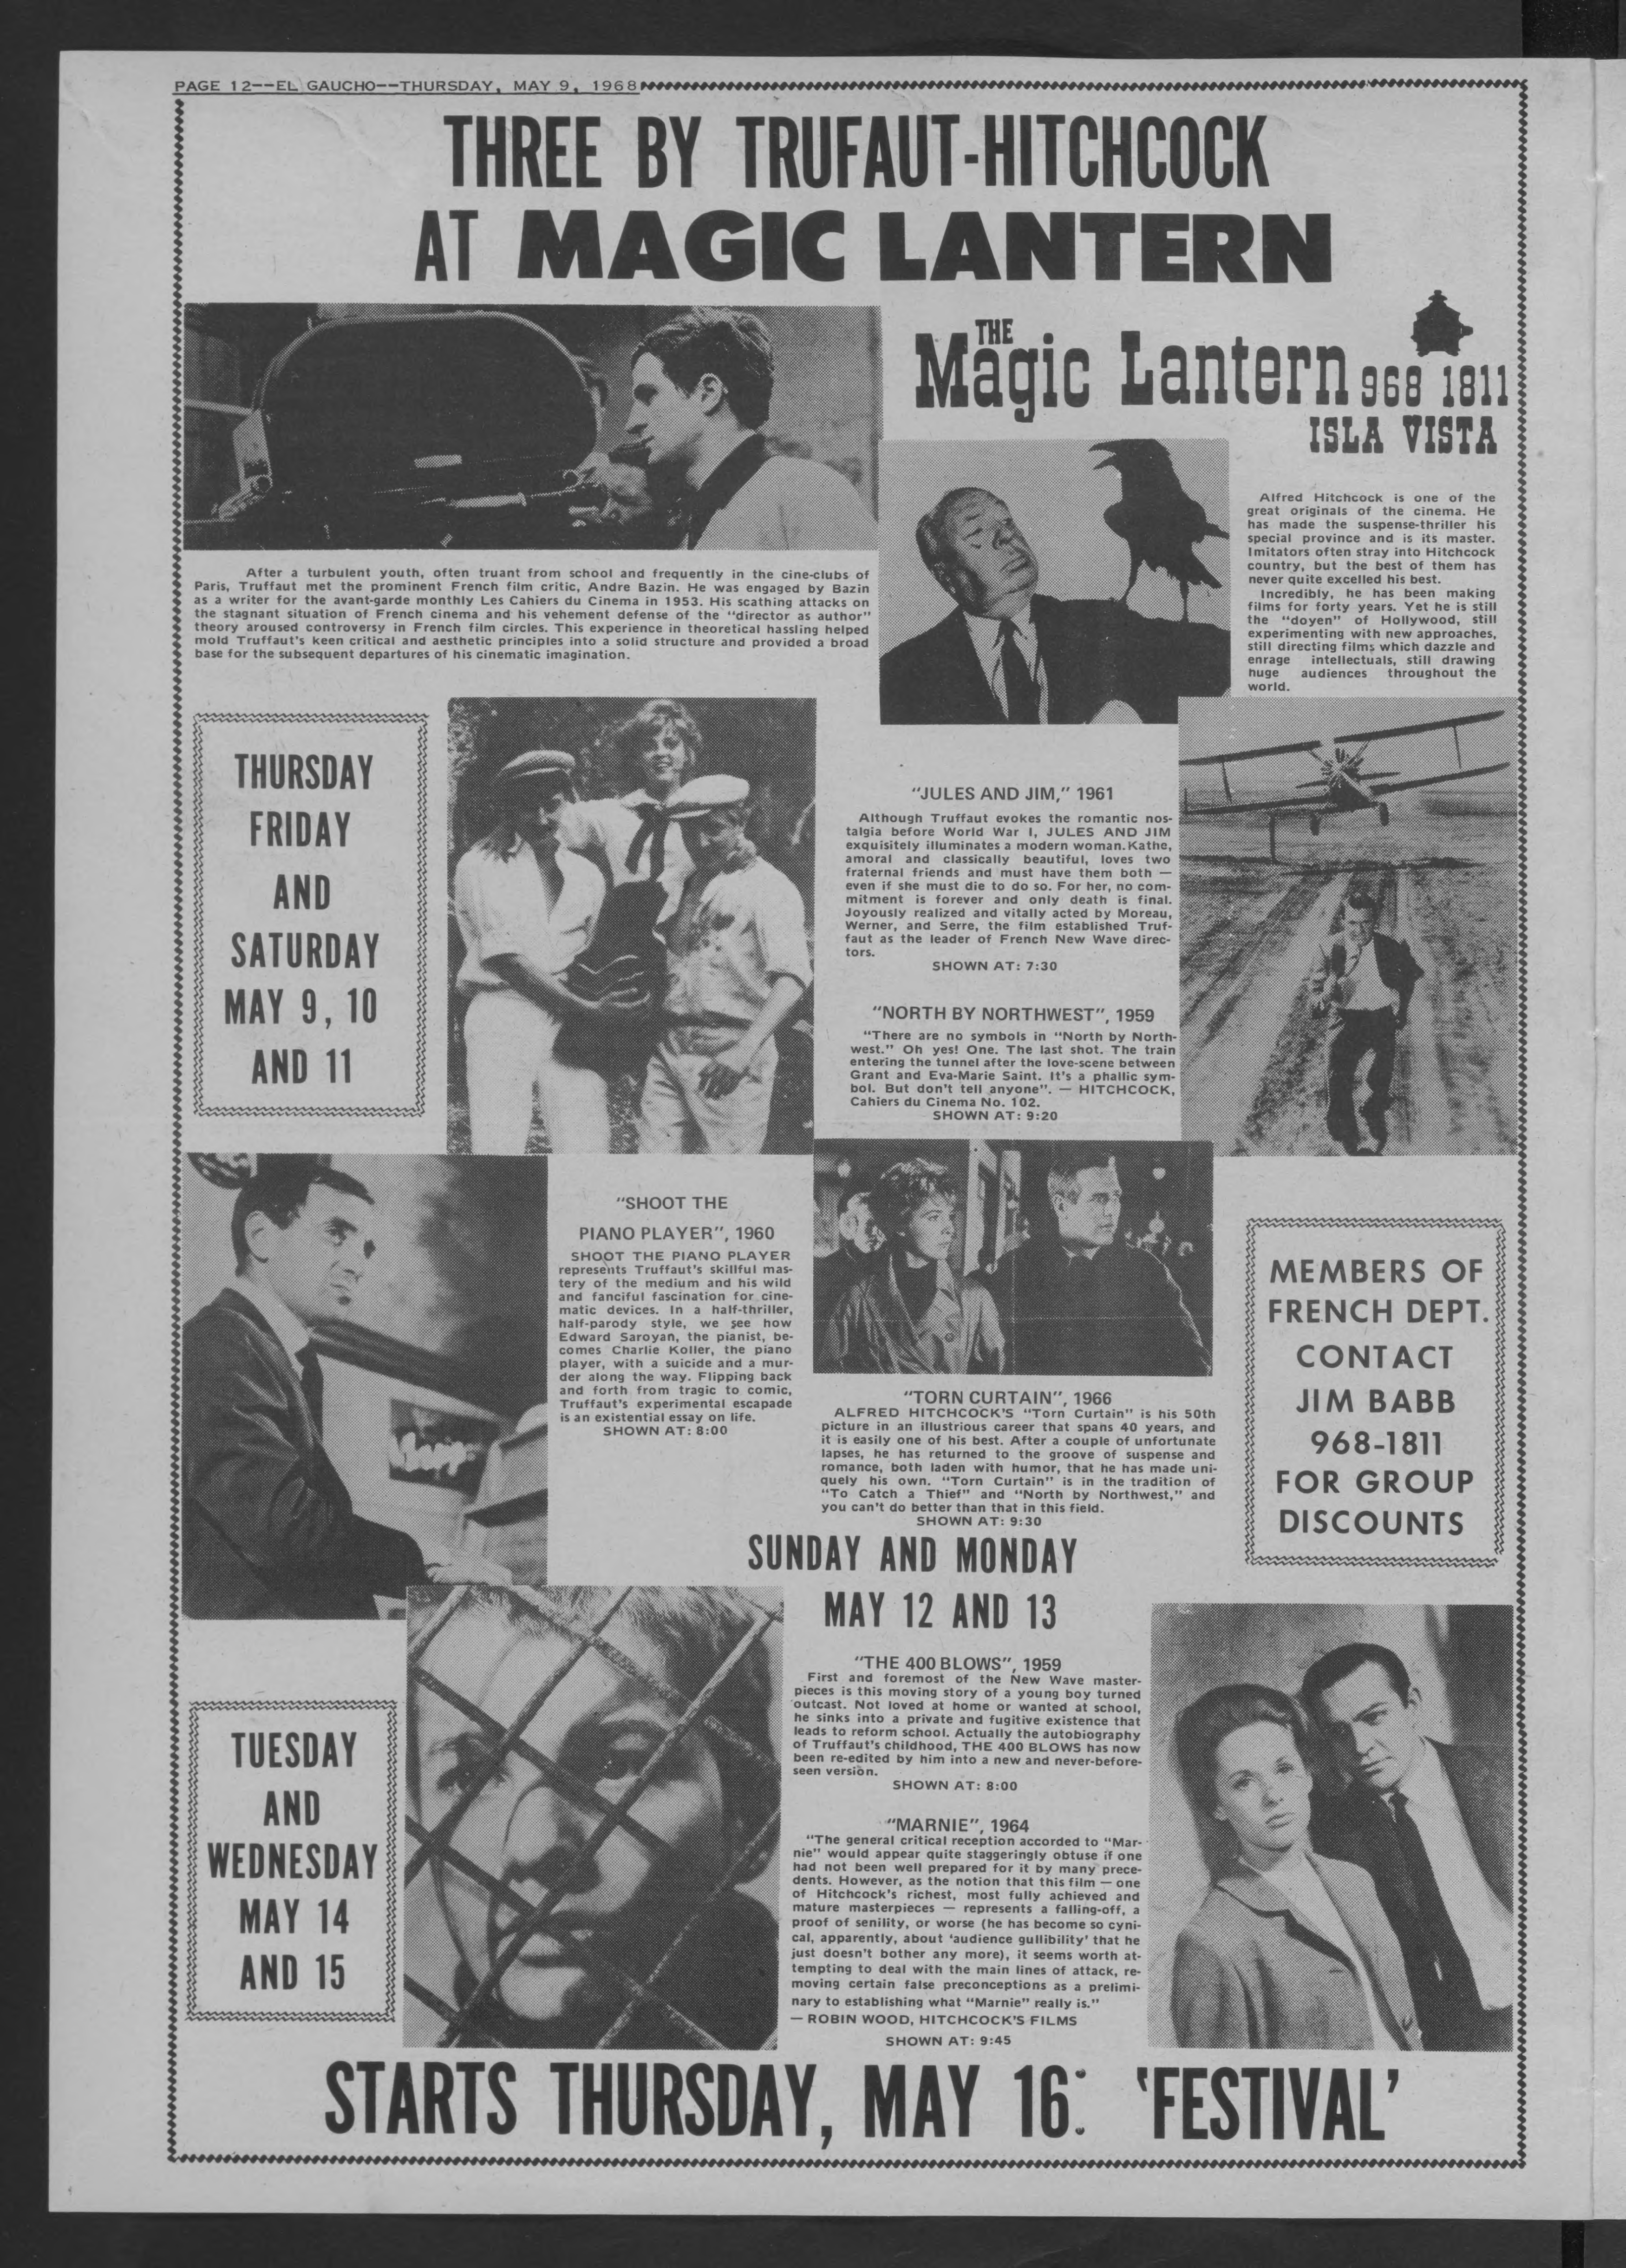 Newspaper advertisement for a Truffaut and Hitchcock festival at The Magic Lantenr in Isla Vista starting May 16 1968